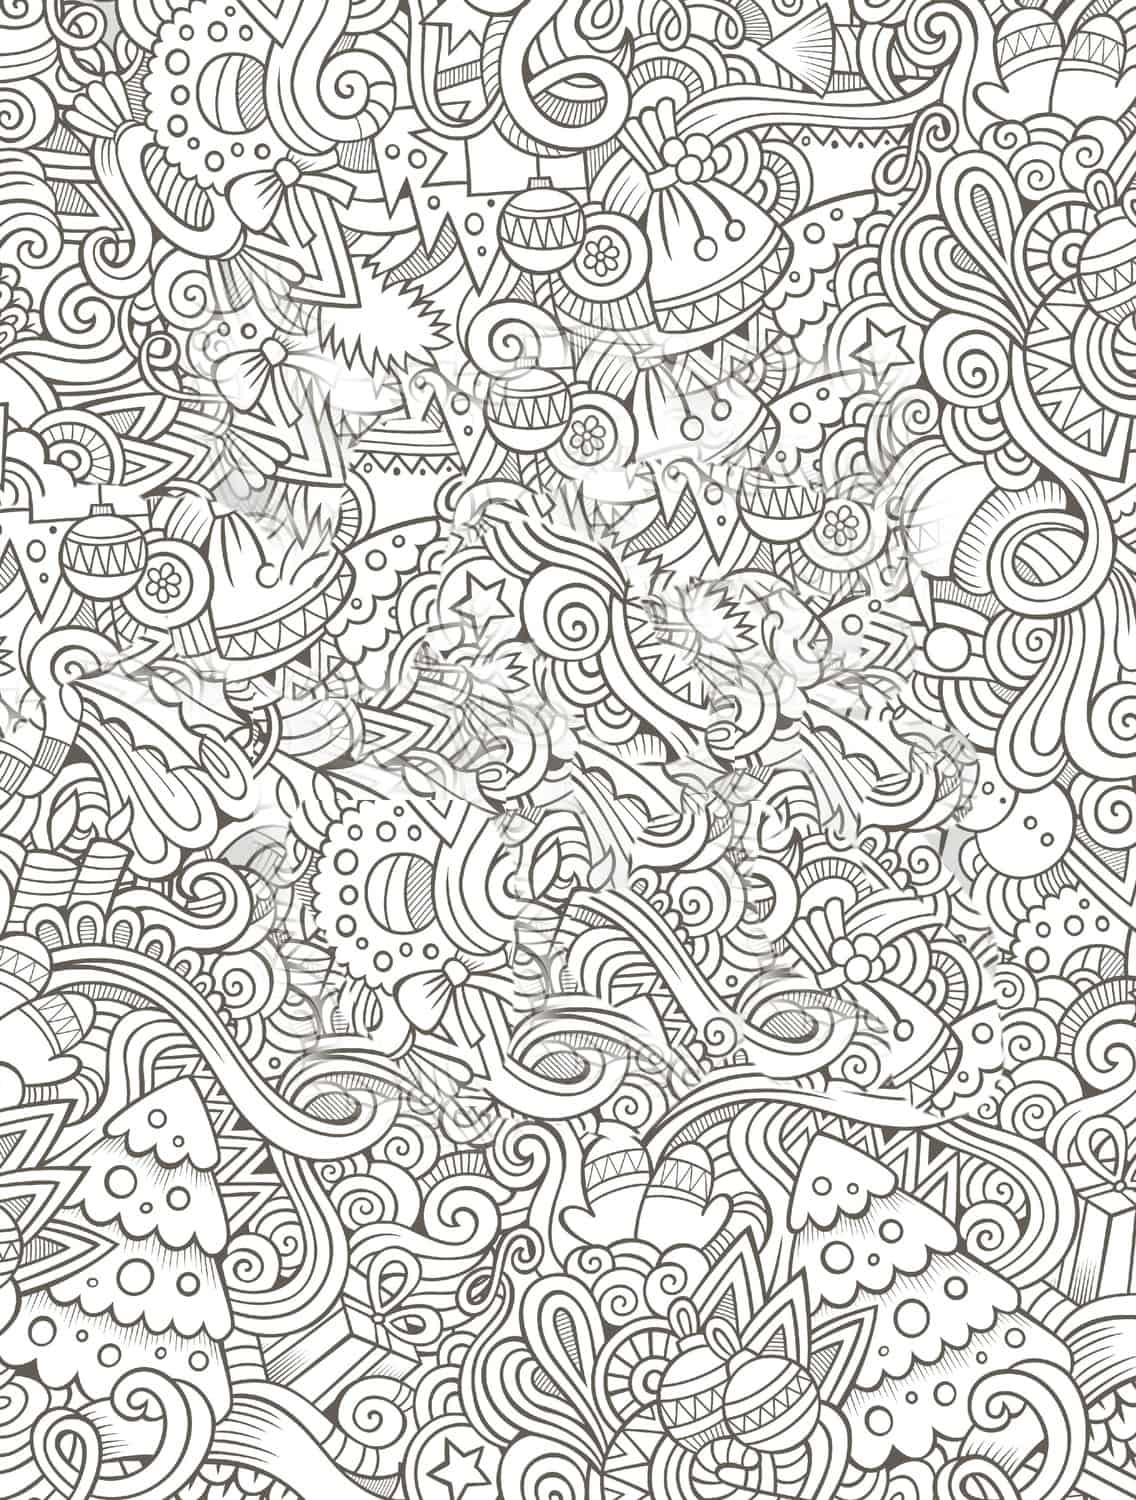 busy coloring page for free christmas gift small - Printable Colouring